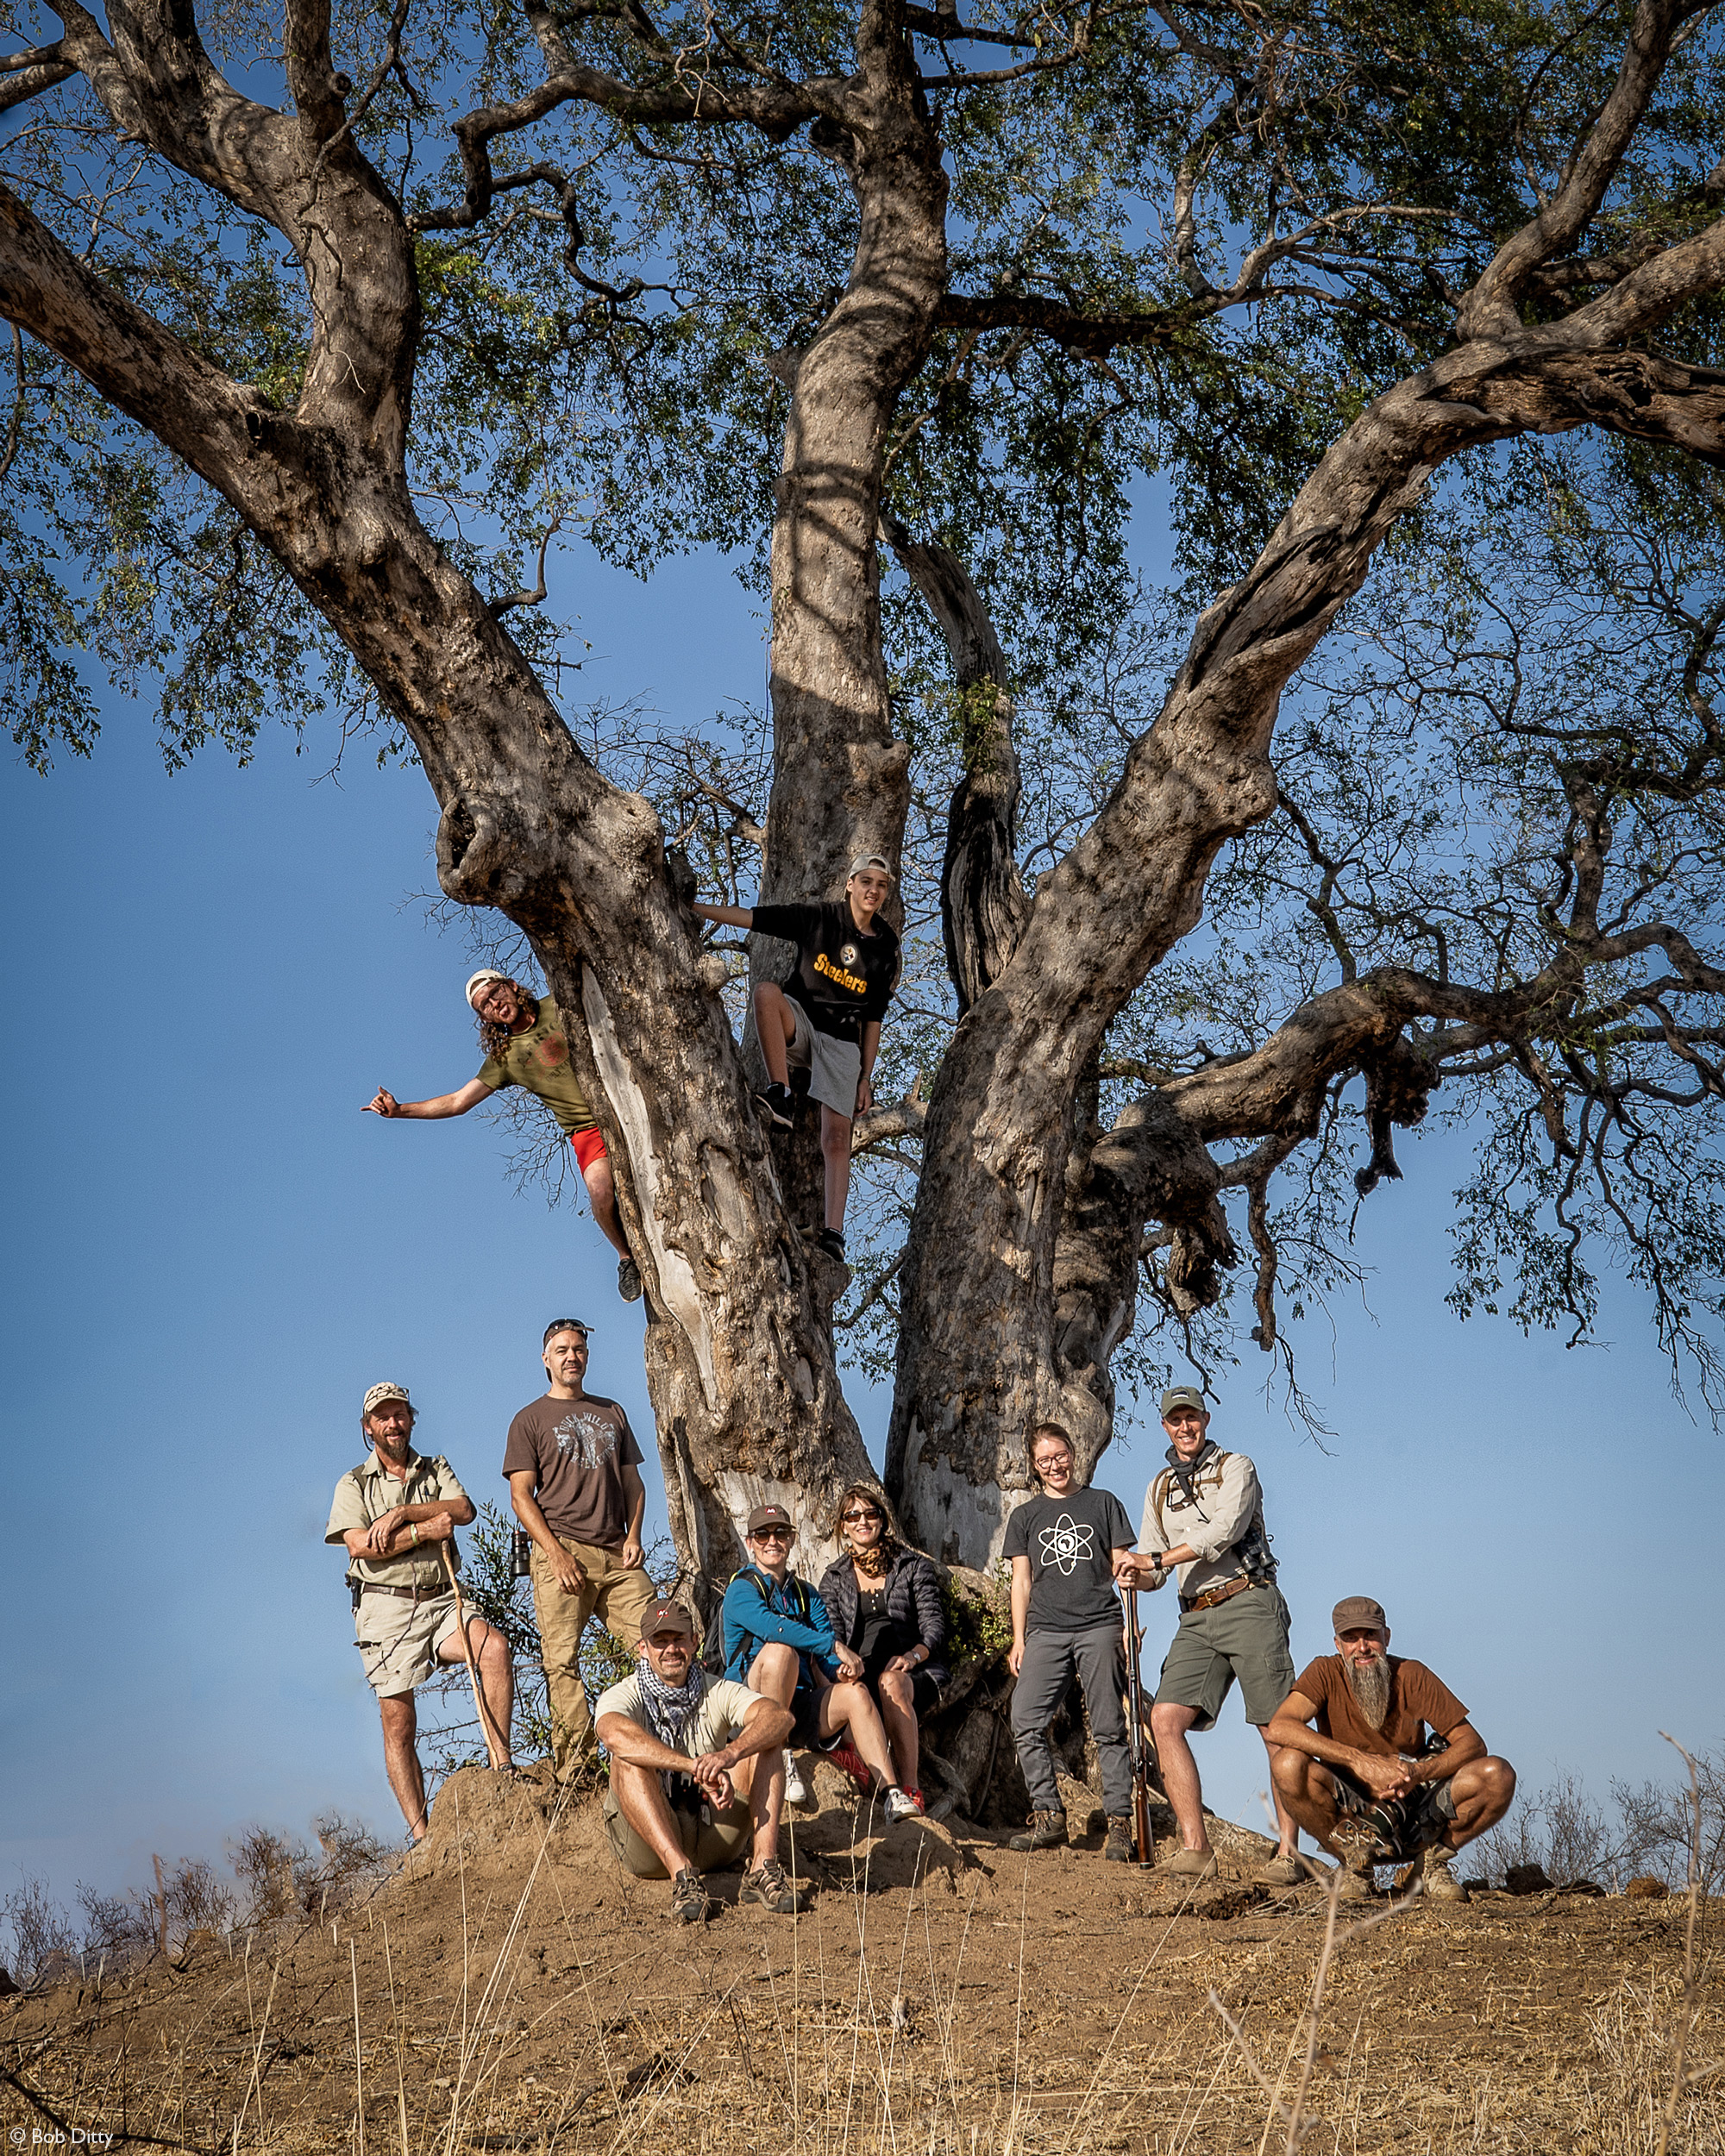 Group photo under weeping boerbean tree, Klaserie Private Nature Reserve, South Africa